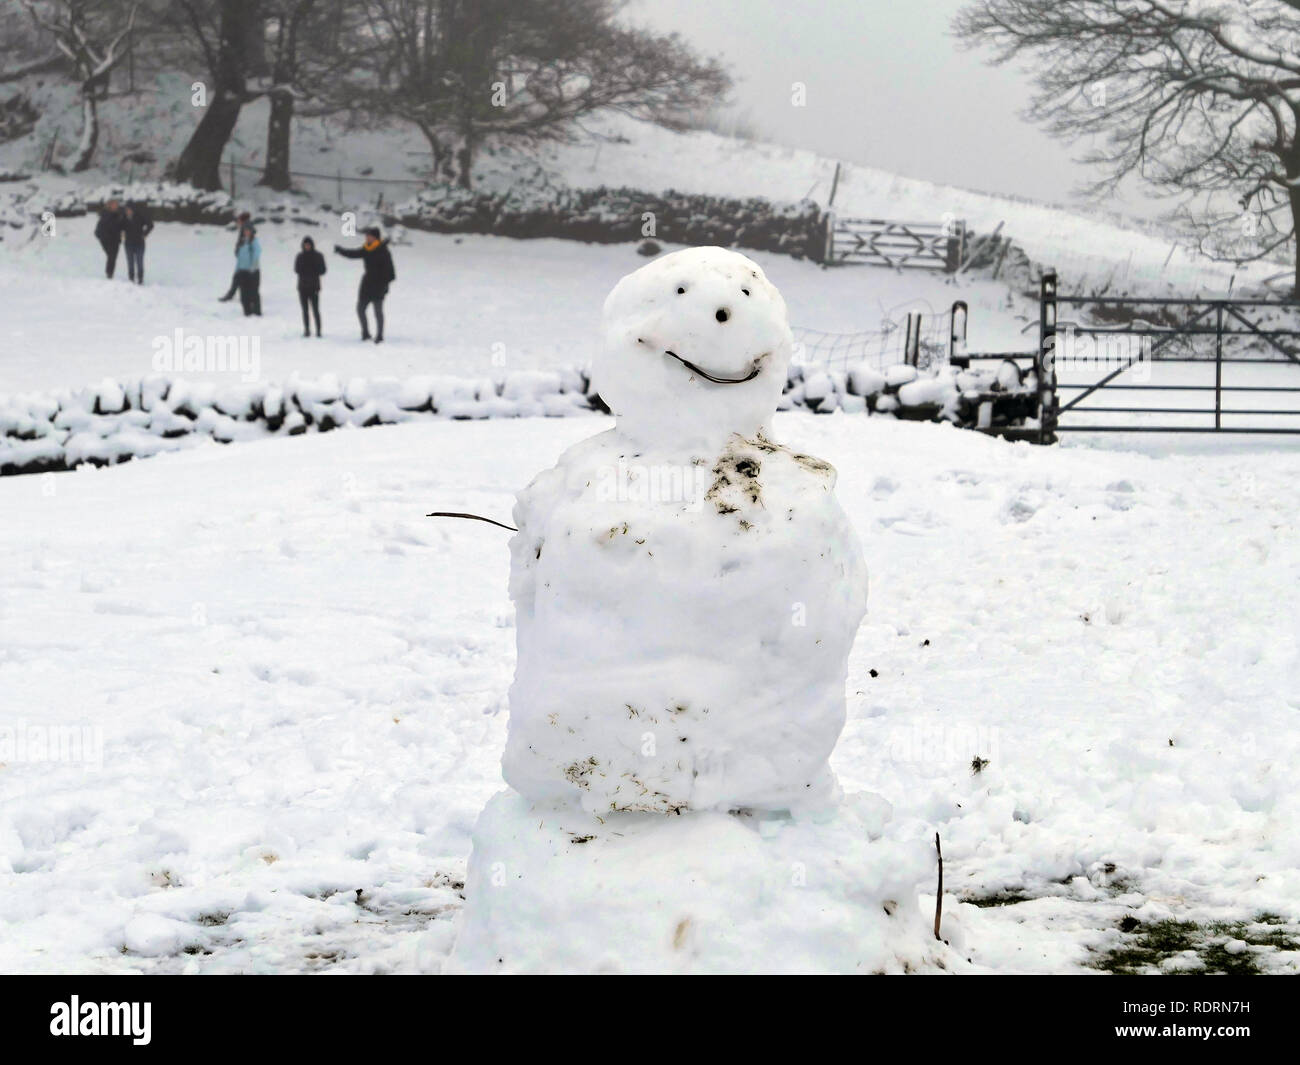 Barrel Edge, Bolehill, Derbyshire. 19th Jan 2019. UK Weather: Snowman & walkers enjoying the snowy wintery weather Barrel Edge, Bolehill, Derbyshire, Peak District National Park Credit: Doug Blane/Alamy Live News - Stock Image